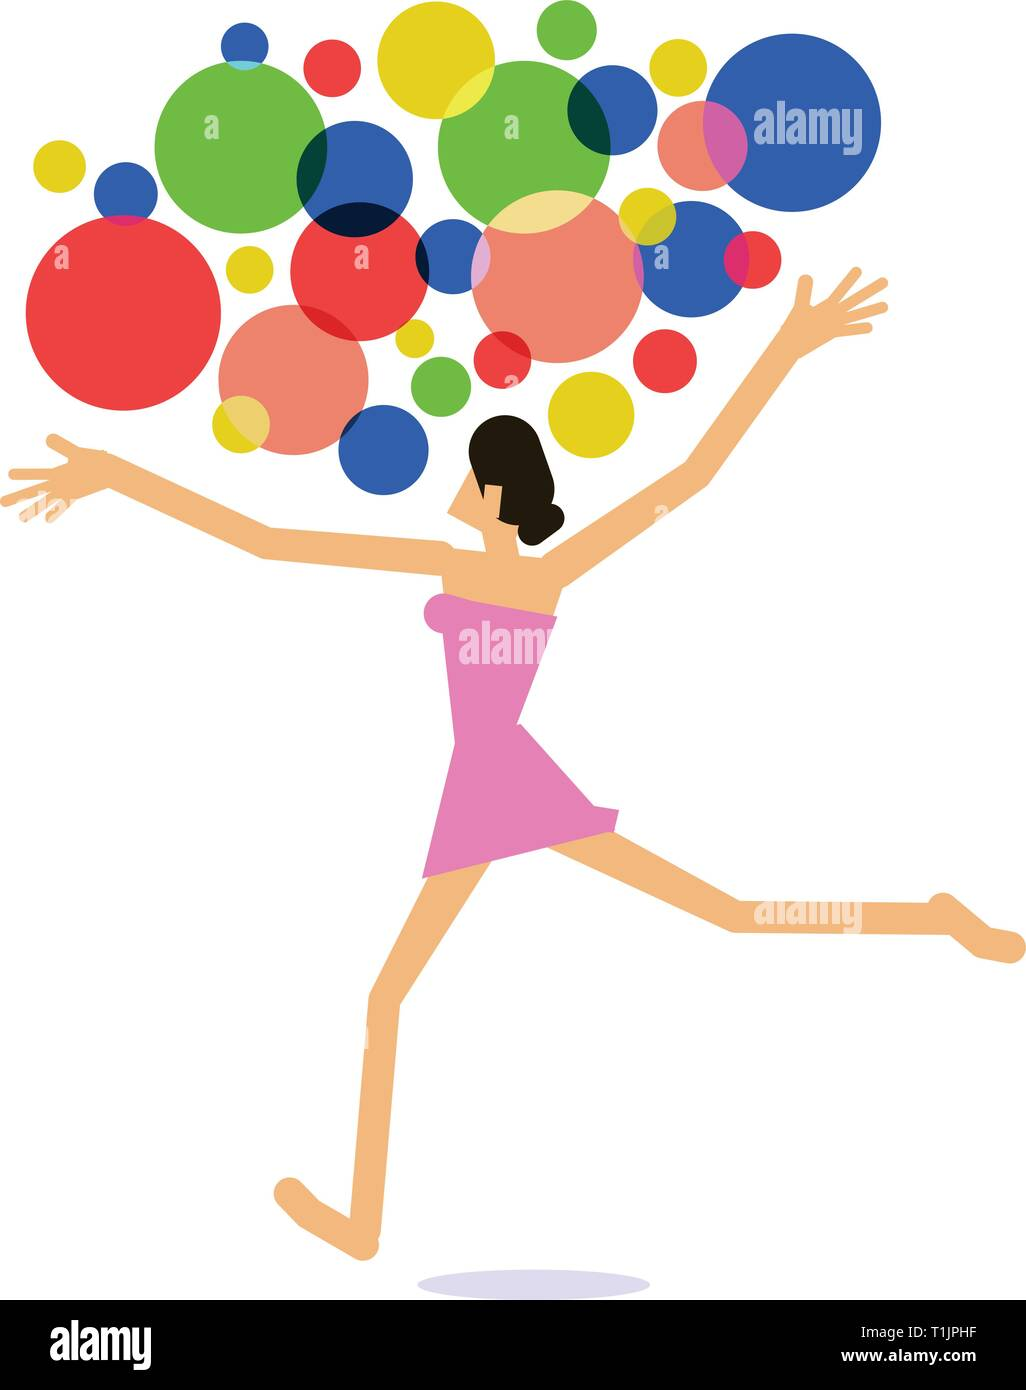 Girl dancing with multi-colored balloons - Stock Vector